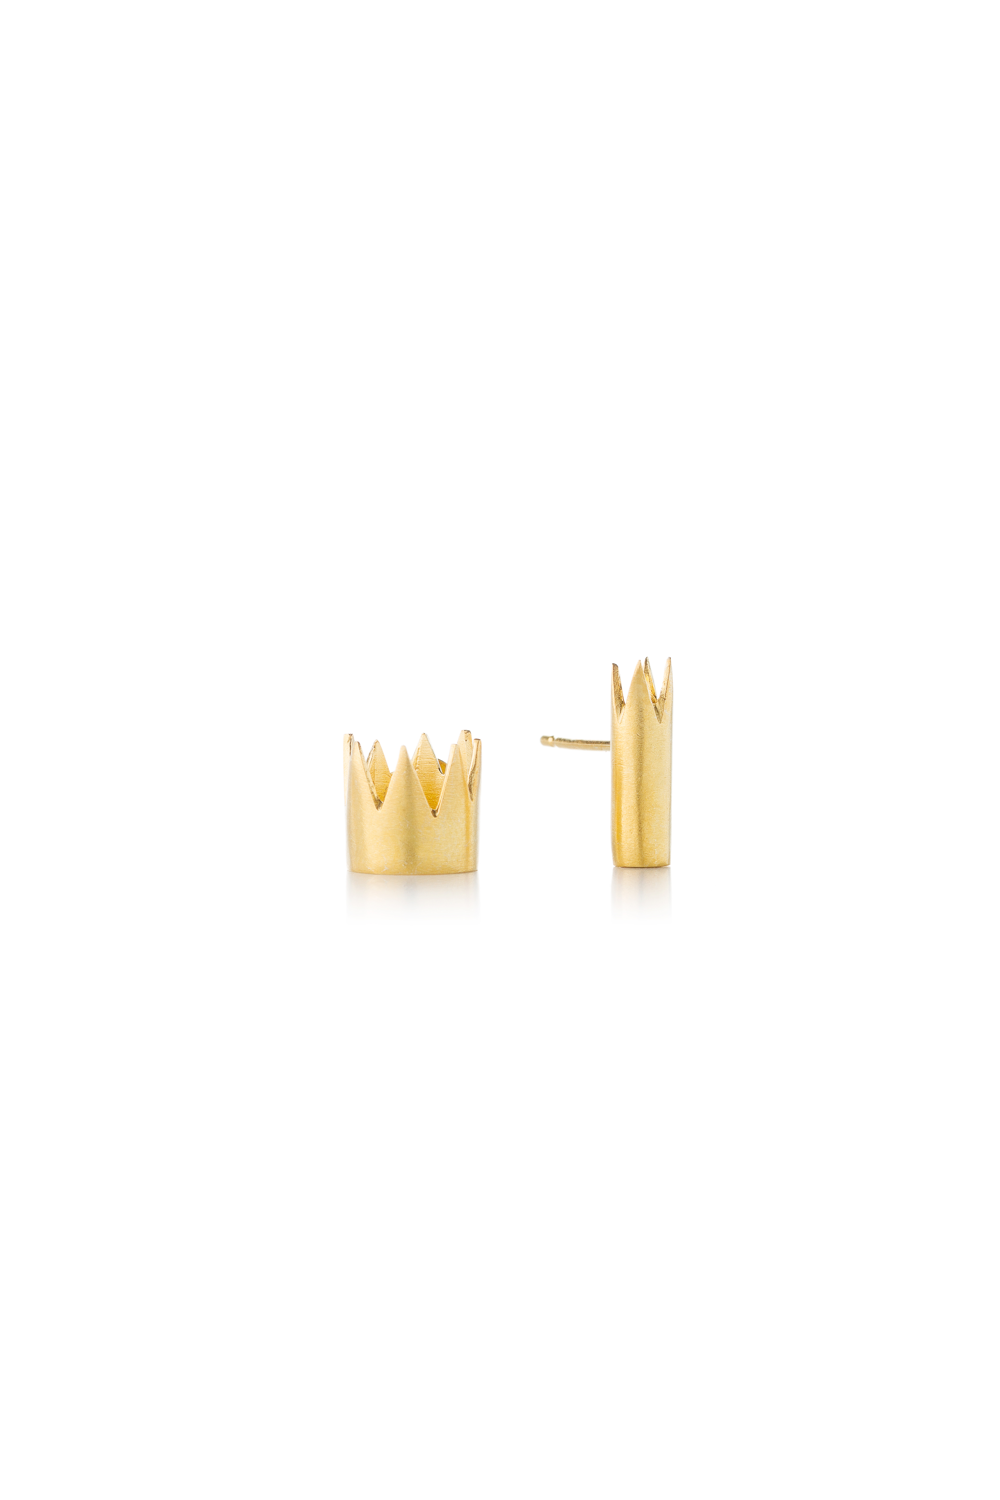 Kiss the Frog gilded CROWNS earrings